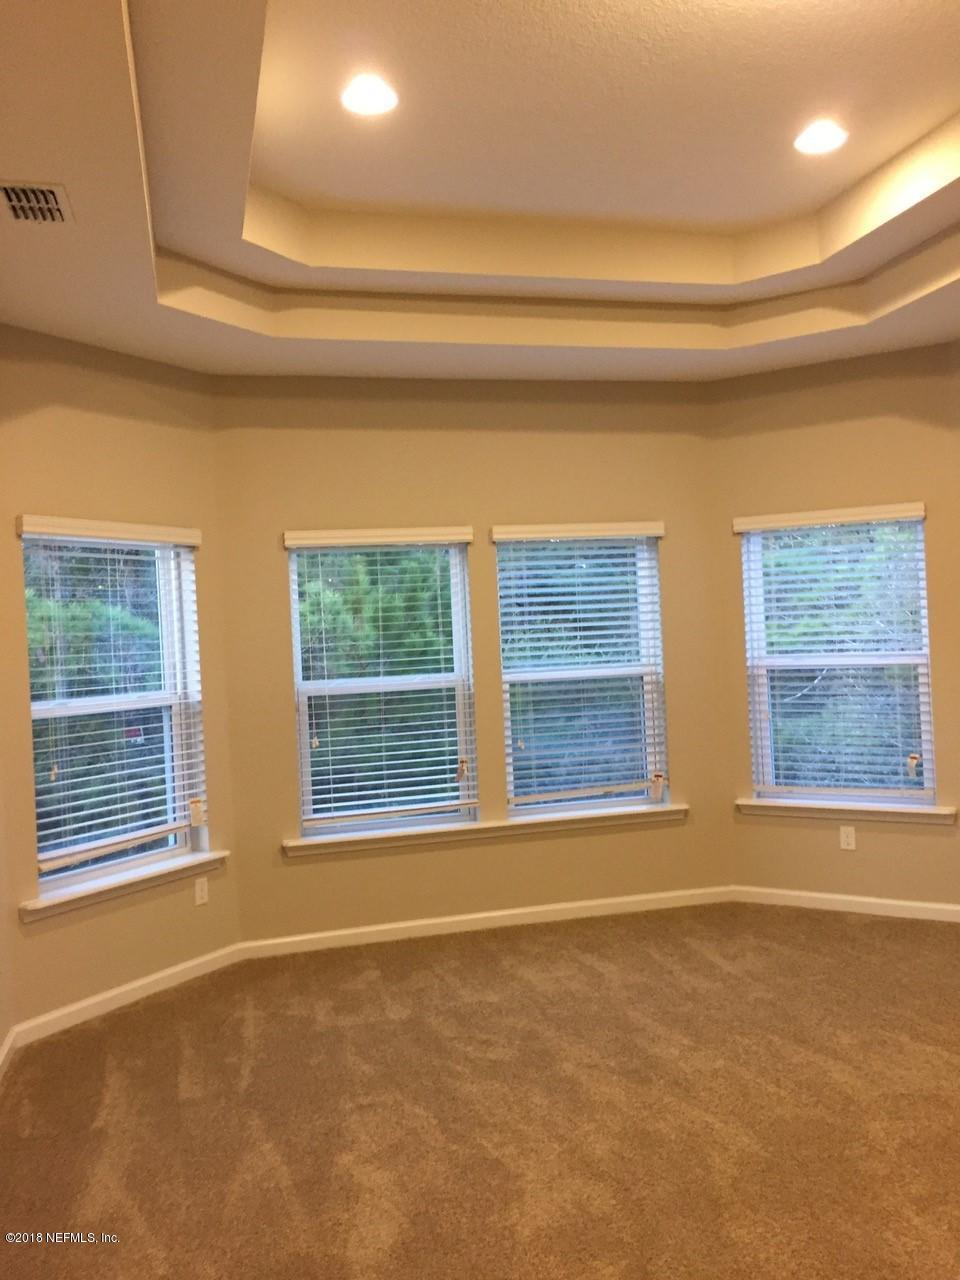 275 TOPSIDE, ST JOHNS, FLORIDA 32259, 4 Bedrooms Bedrooms, ,4 BathroomsBathrooms,Residential - single family,For sale,TOPSIDE,952242